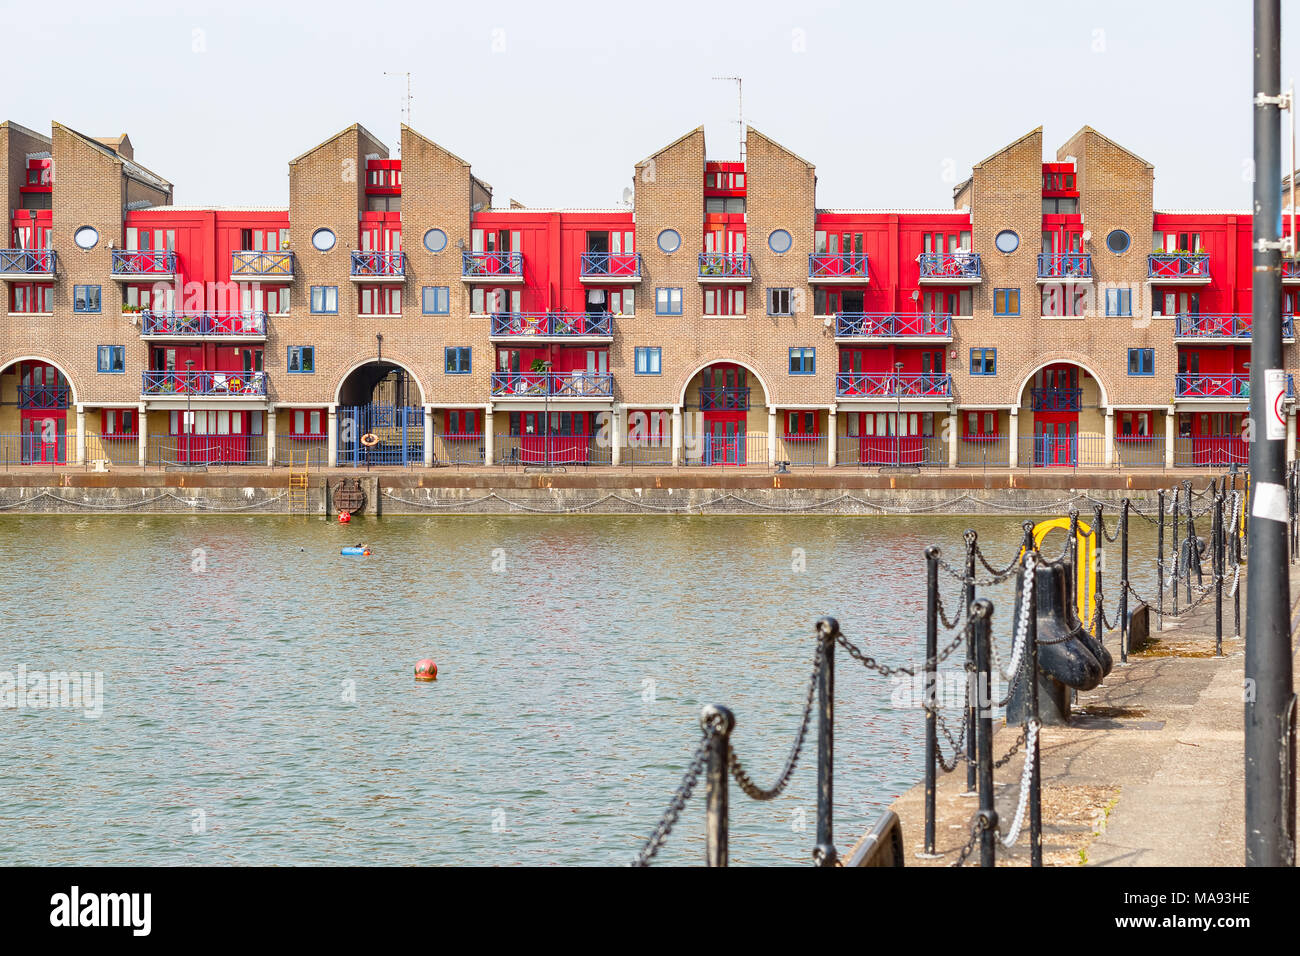 Dockside apartments at Shadwell Basin, part of London Docks in London - Stock Image